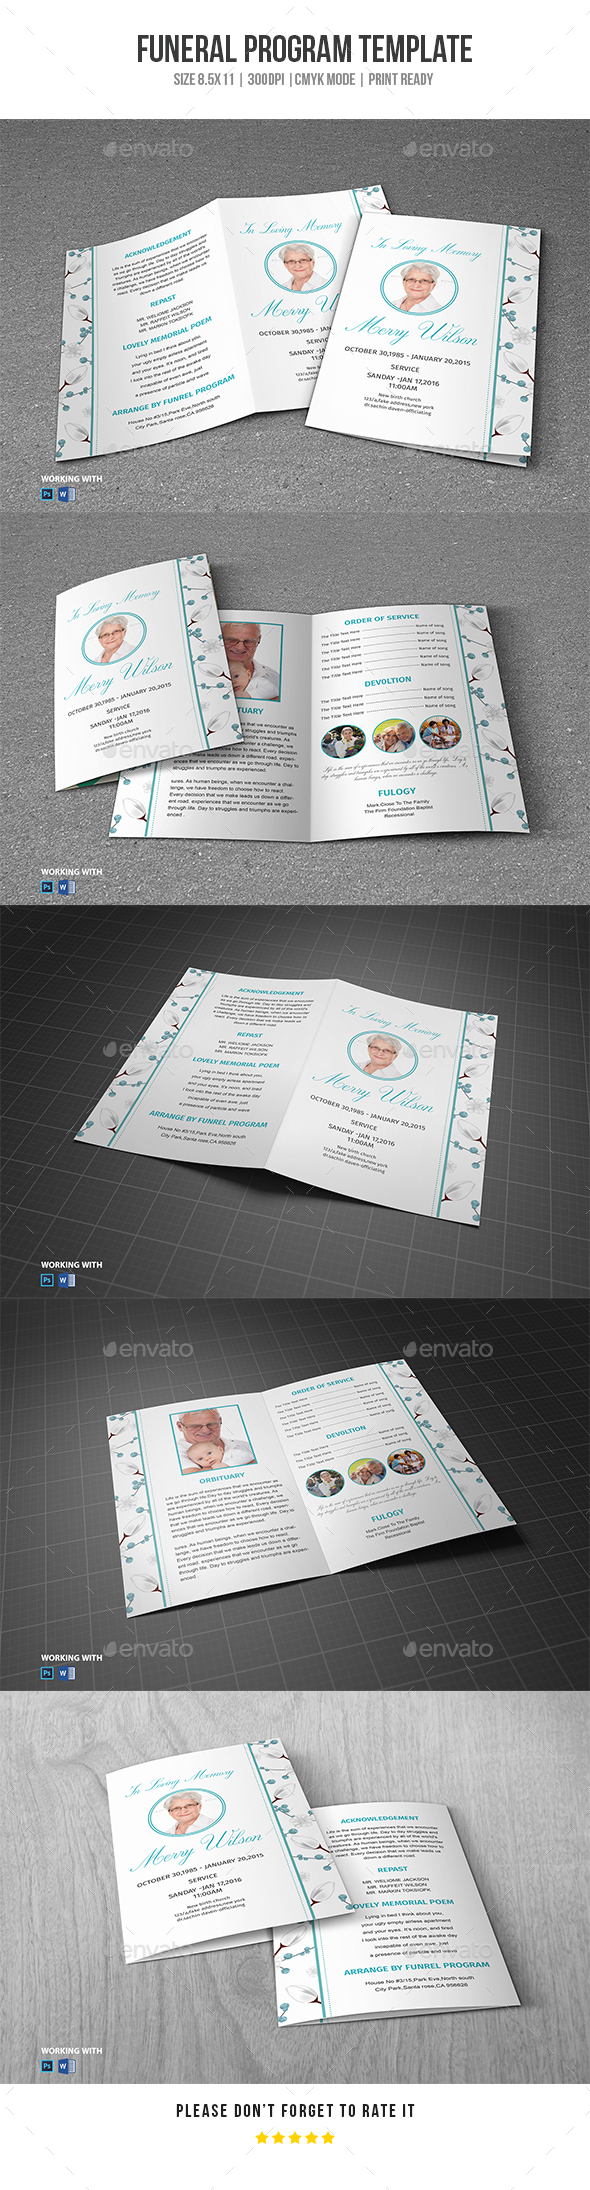 GraphicRiver Funeral Program Template Vol 36 20298235